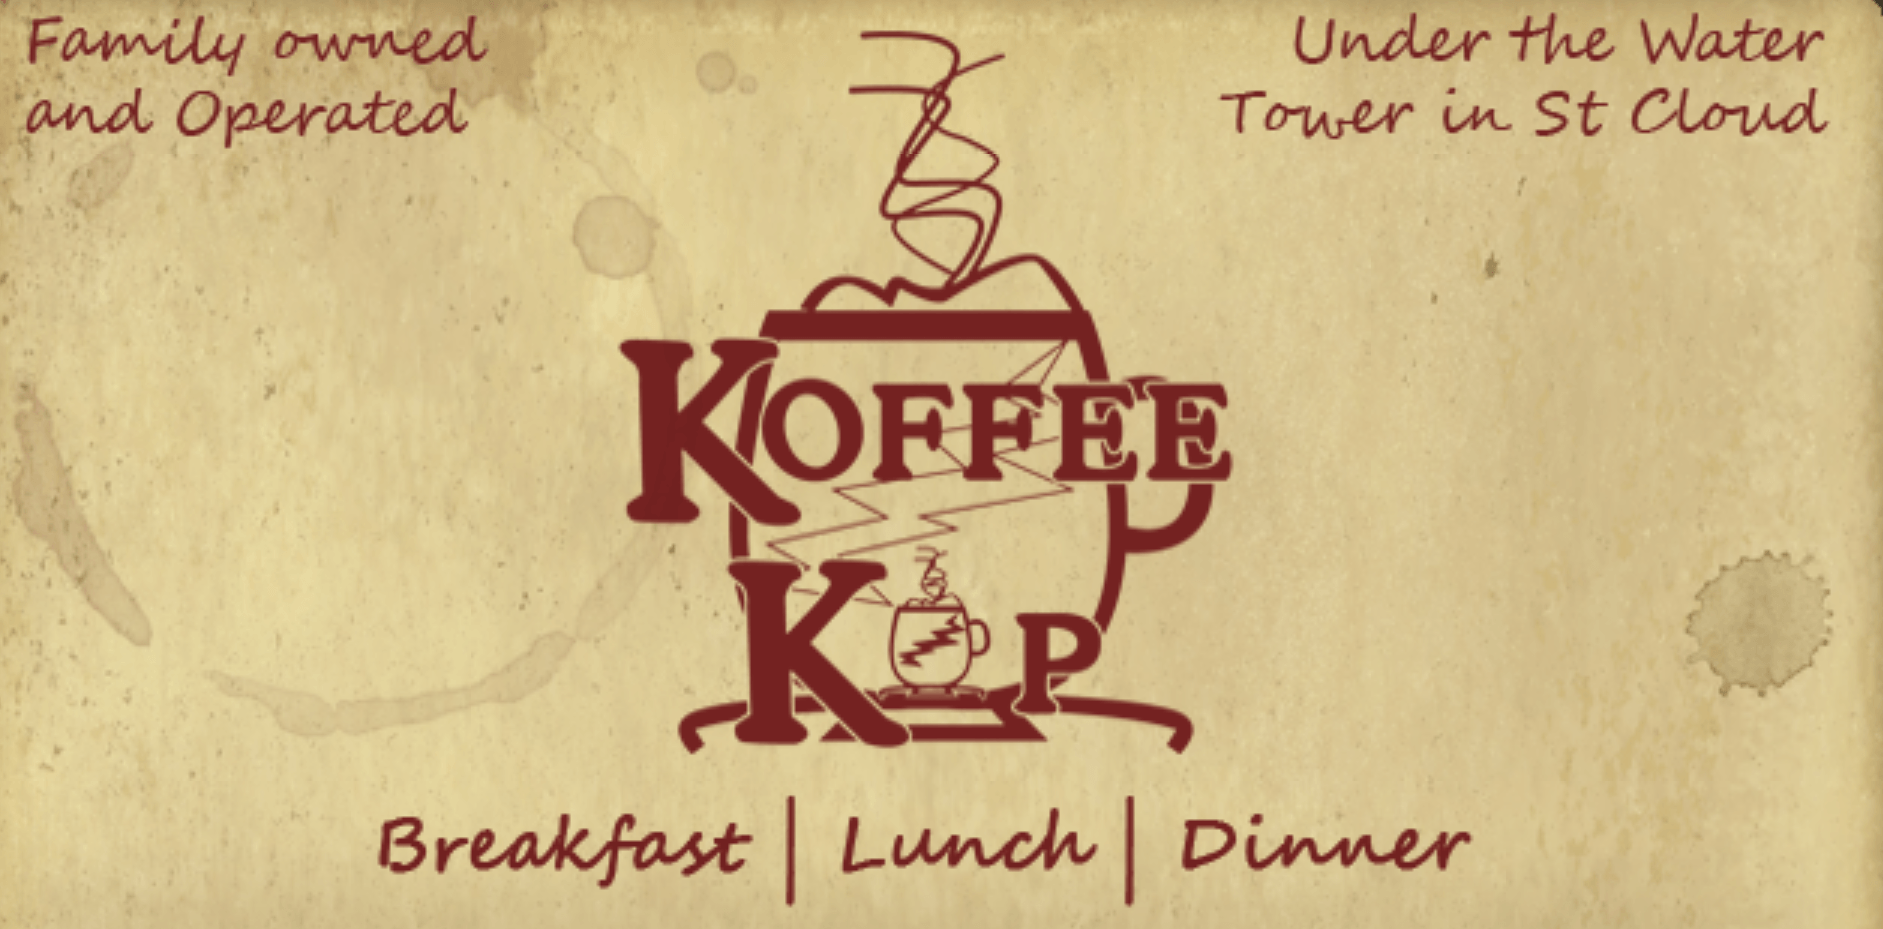 The Koffee Kup Restaurant in orlando